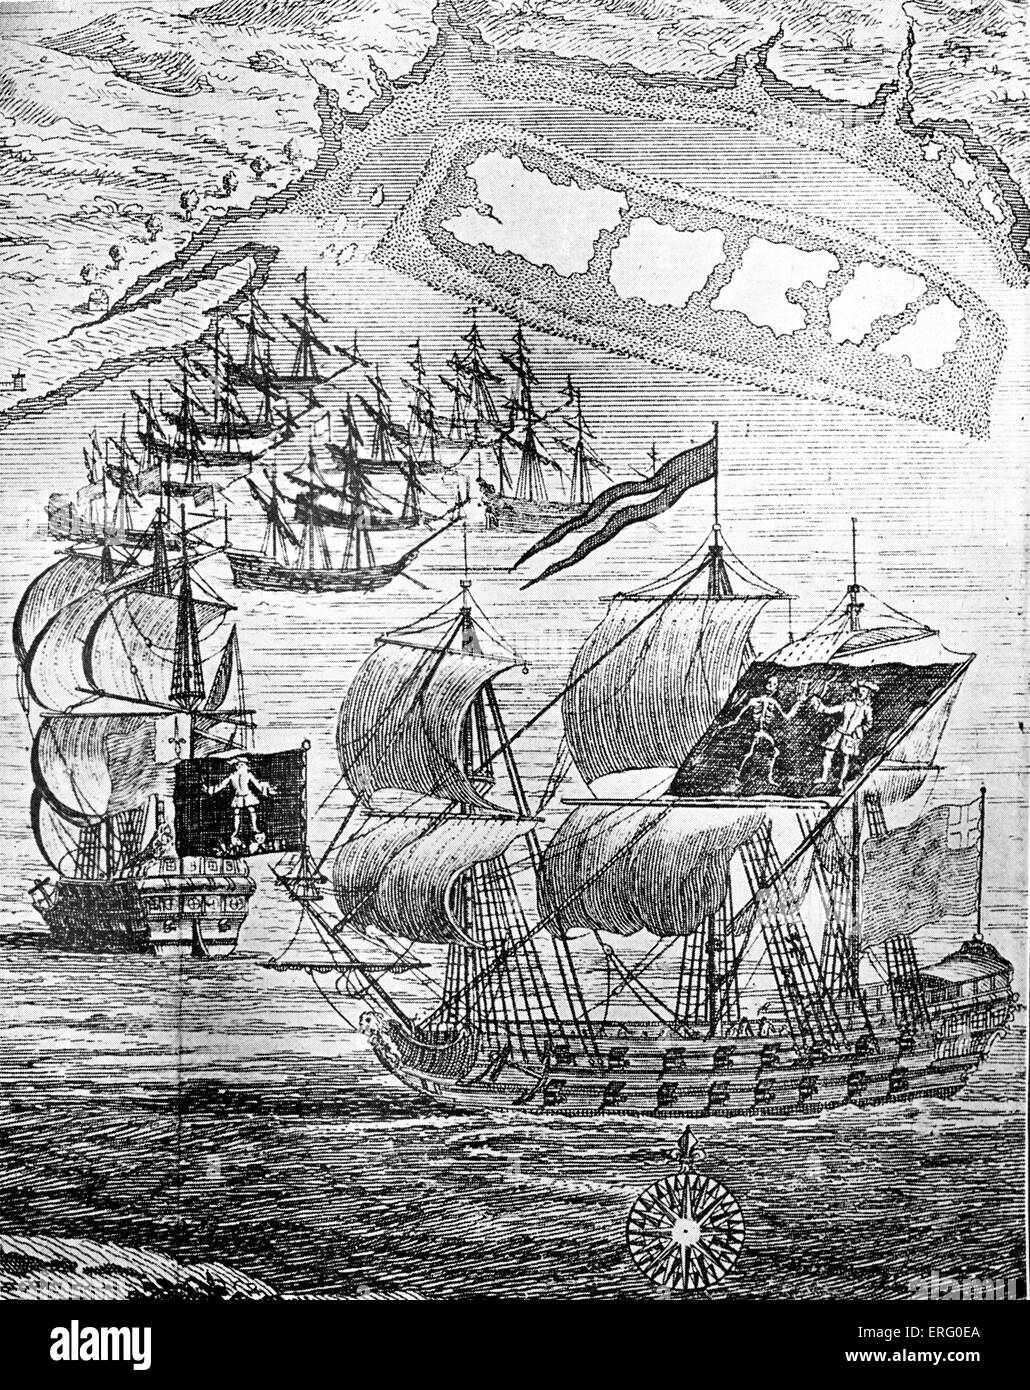 'The Pirate Ships 'Royal Fortune' and 'Ranger' in Whydah Road, January 11, 1722', engraving. - Stock Image